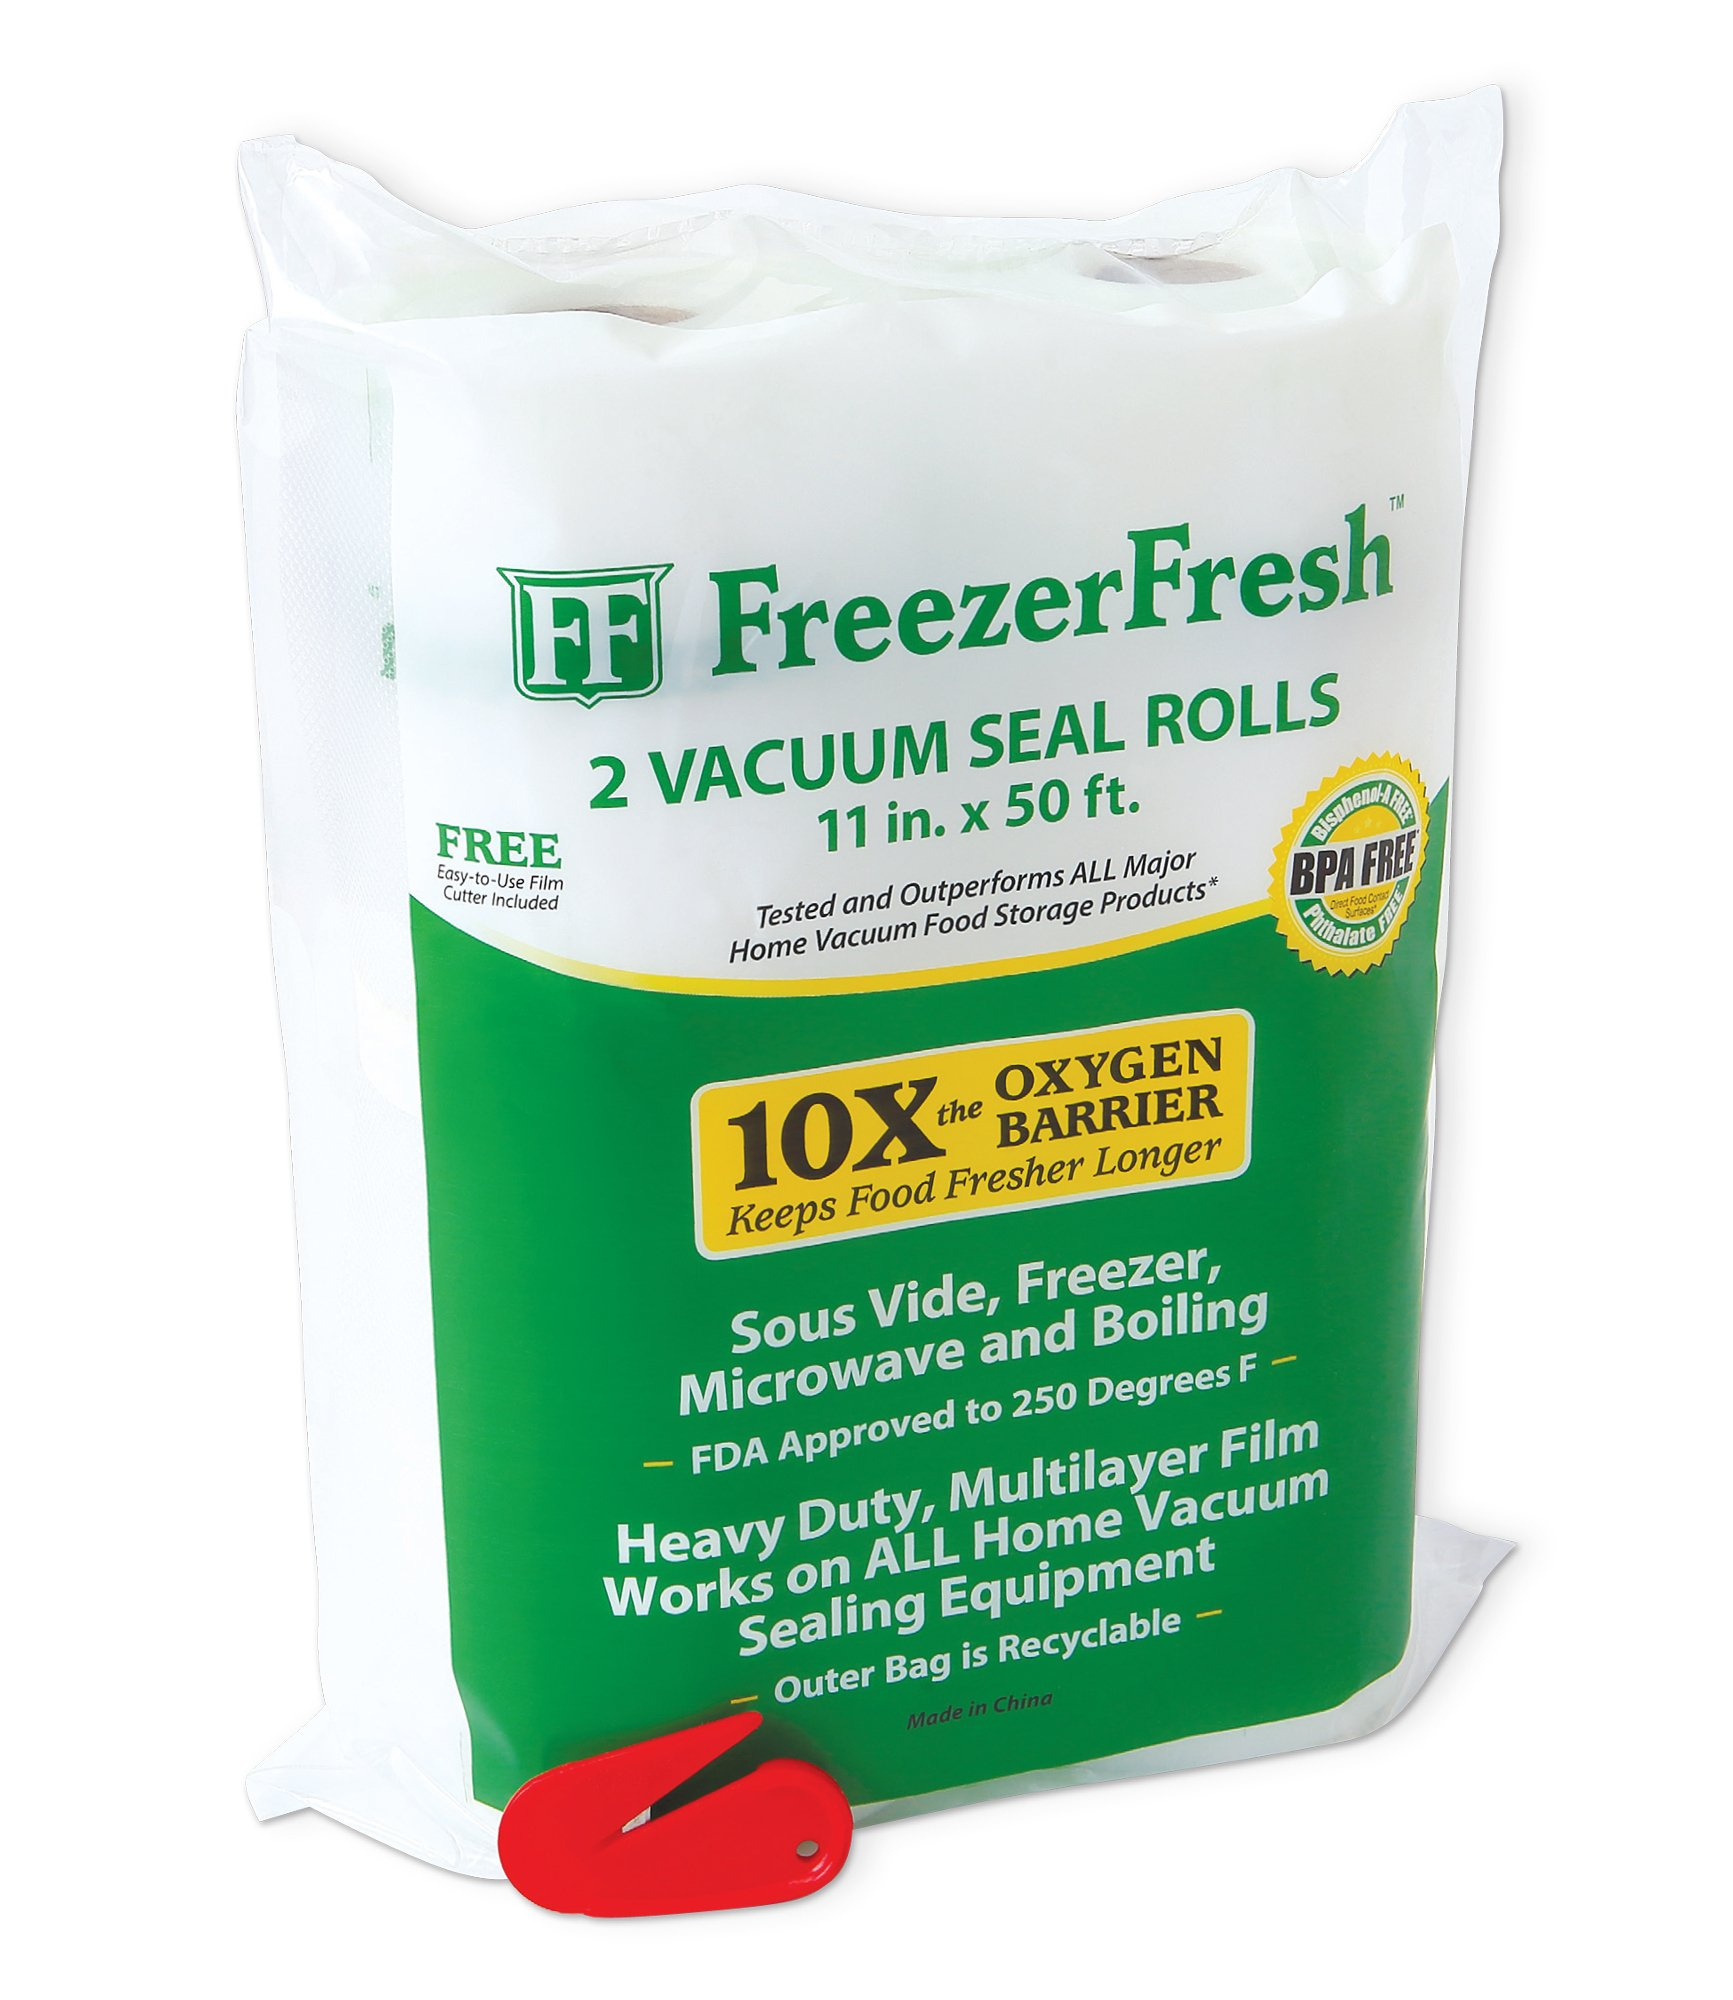 2 Pack - Freezer Fresh 11'' x 50' Commercial Grade Vacuum Sealer Rolls. Food Storage Rolls Compatible with FoodSaver, Sous Vide and more